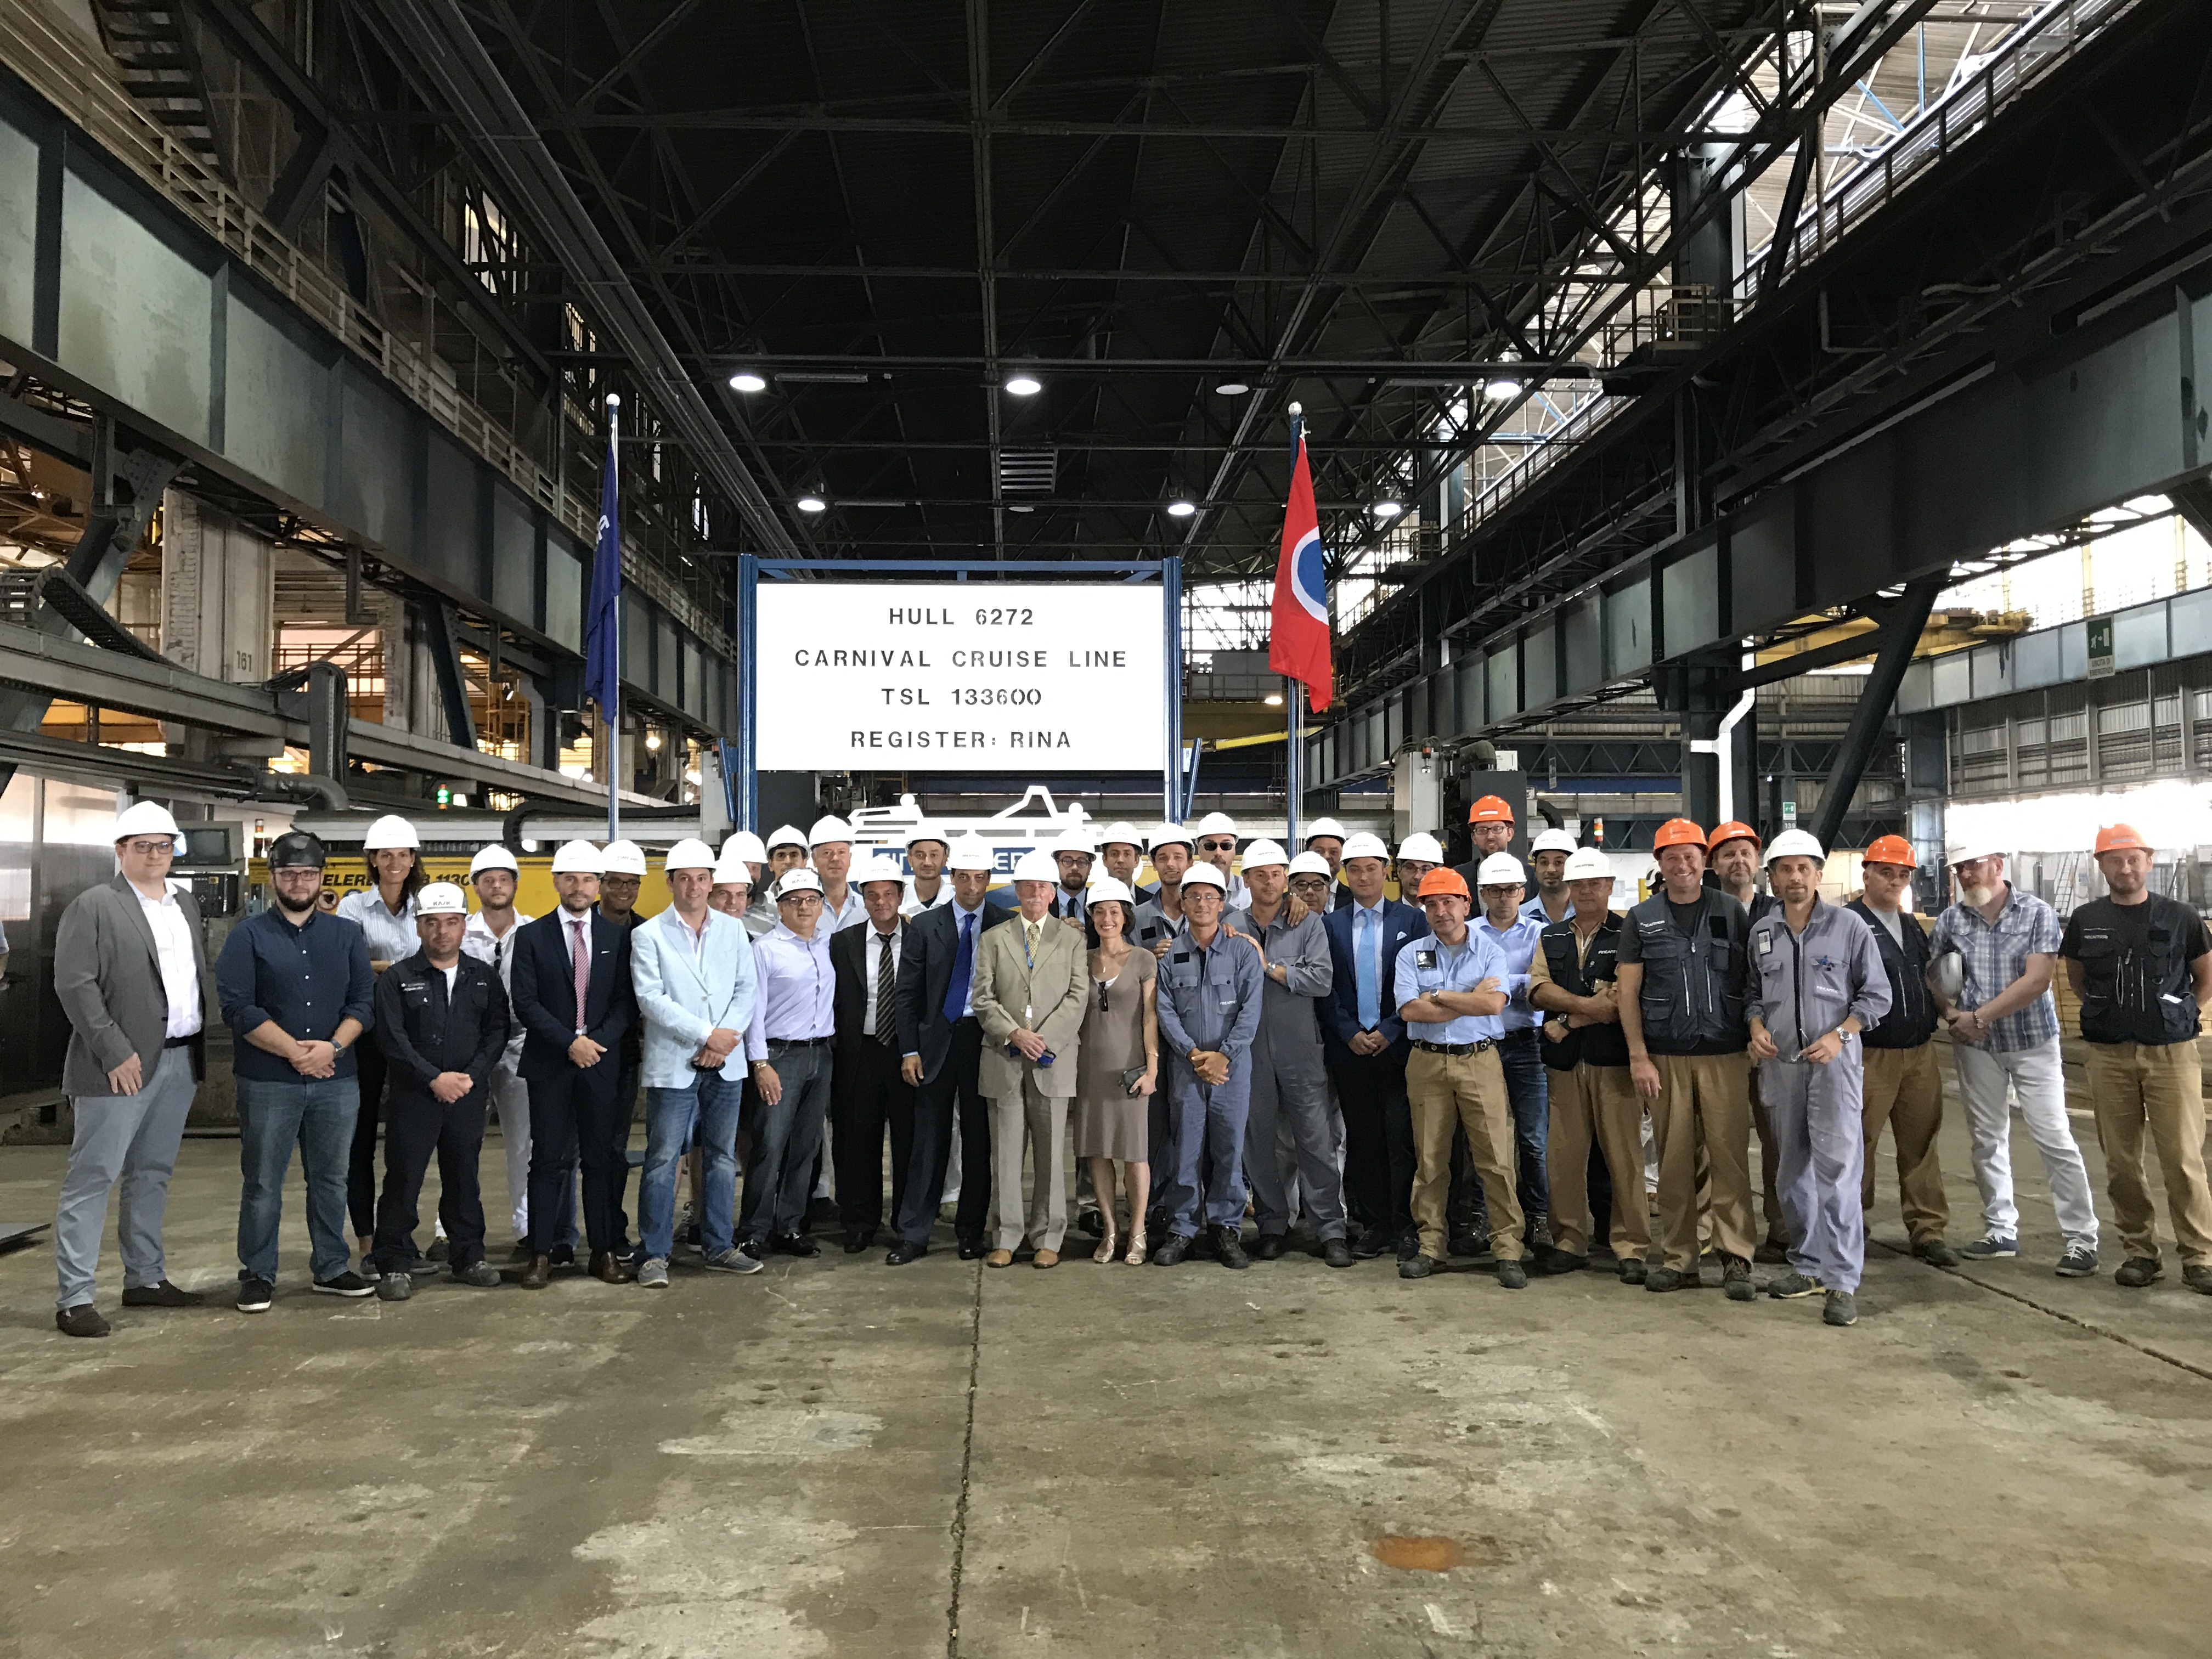 Steel Cutting Ceremony Held for New 133,500-ton Vista-Class Ship Set to Debut in 2019